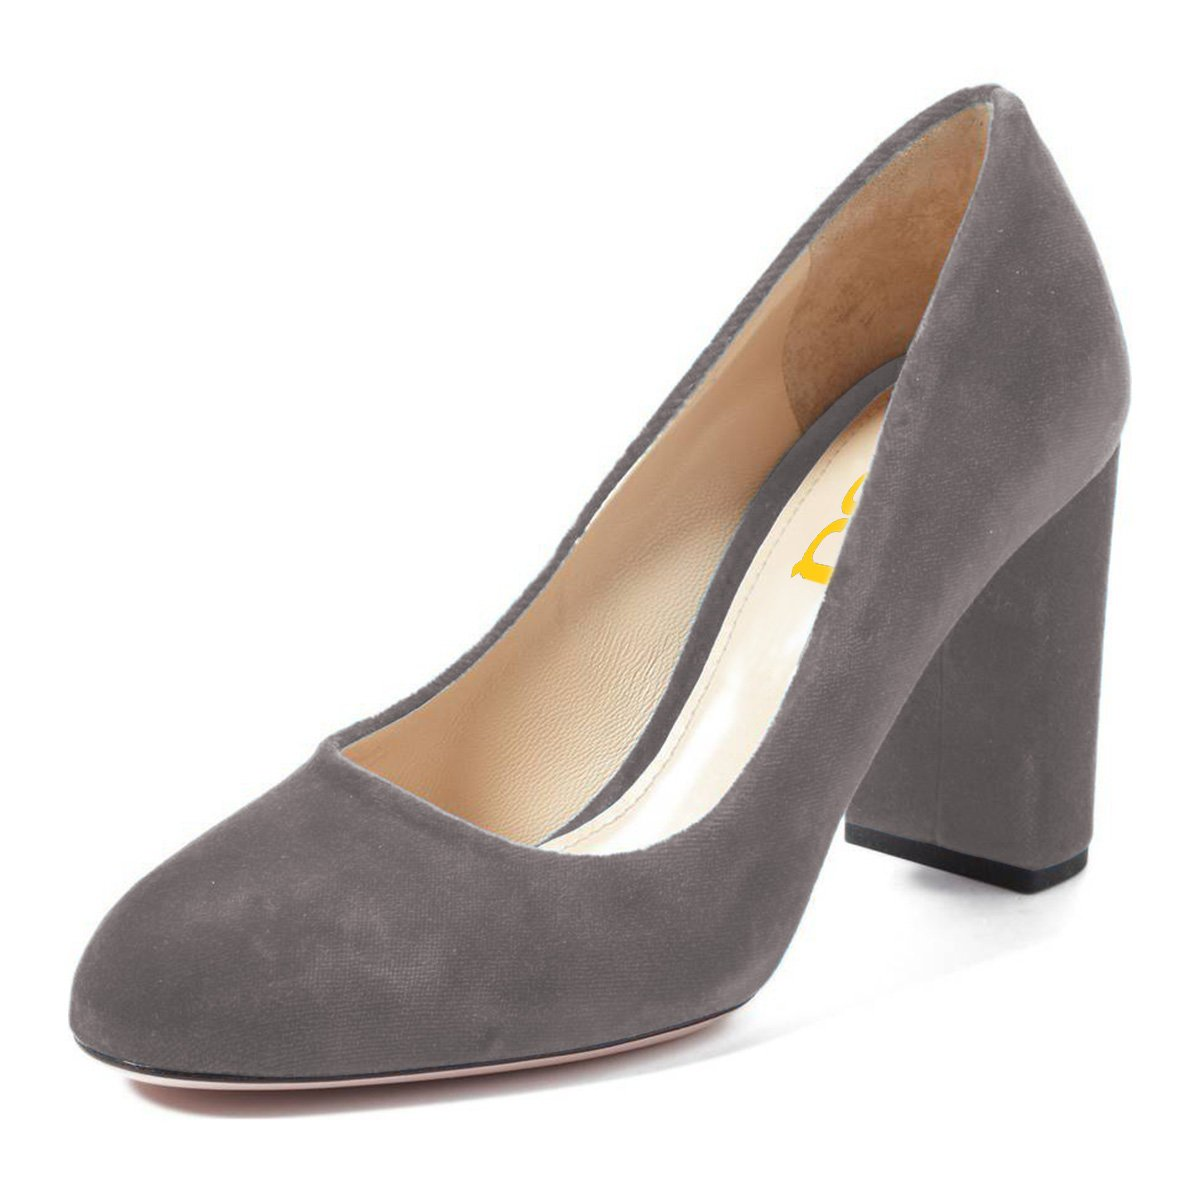 FSJ Women Classic Round Toe Velvet Pumps Chunky High Heels Slip On Office Dress Shoes Size 4-15 US B077Q3SV1G 11 M US|Grey